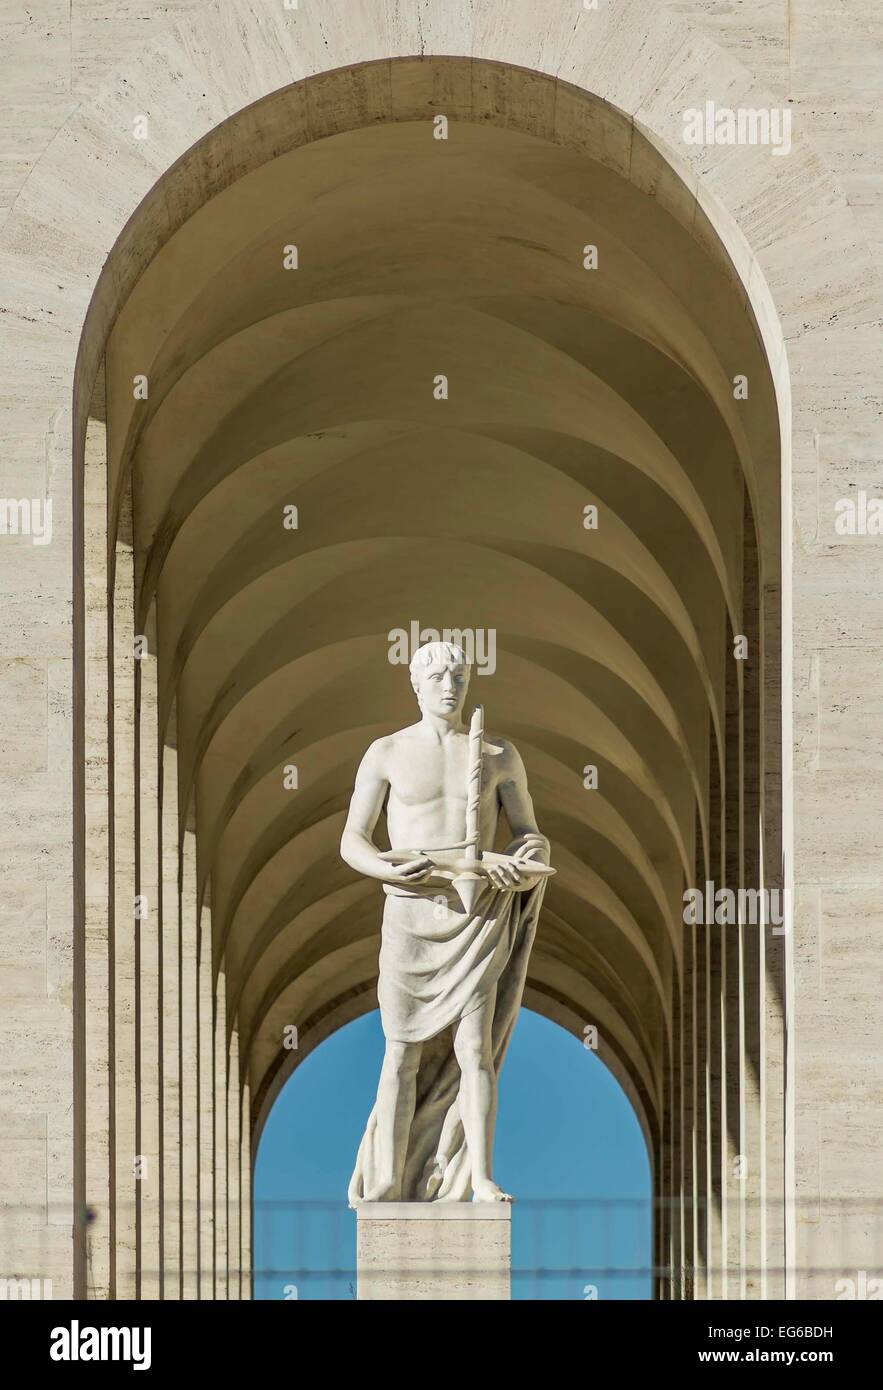 rome eur palace decoration - Stock Image